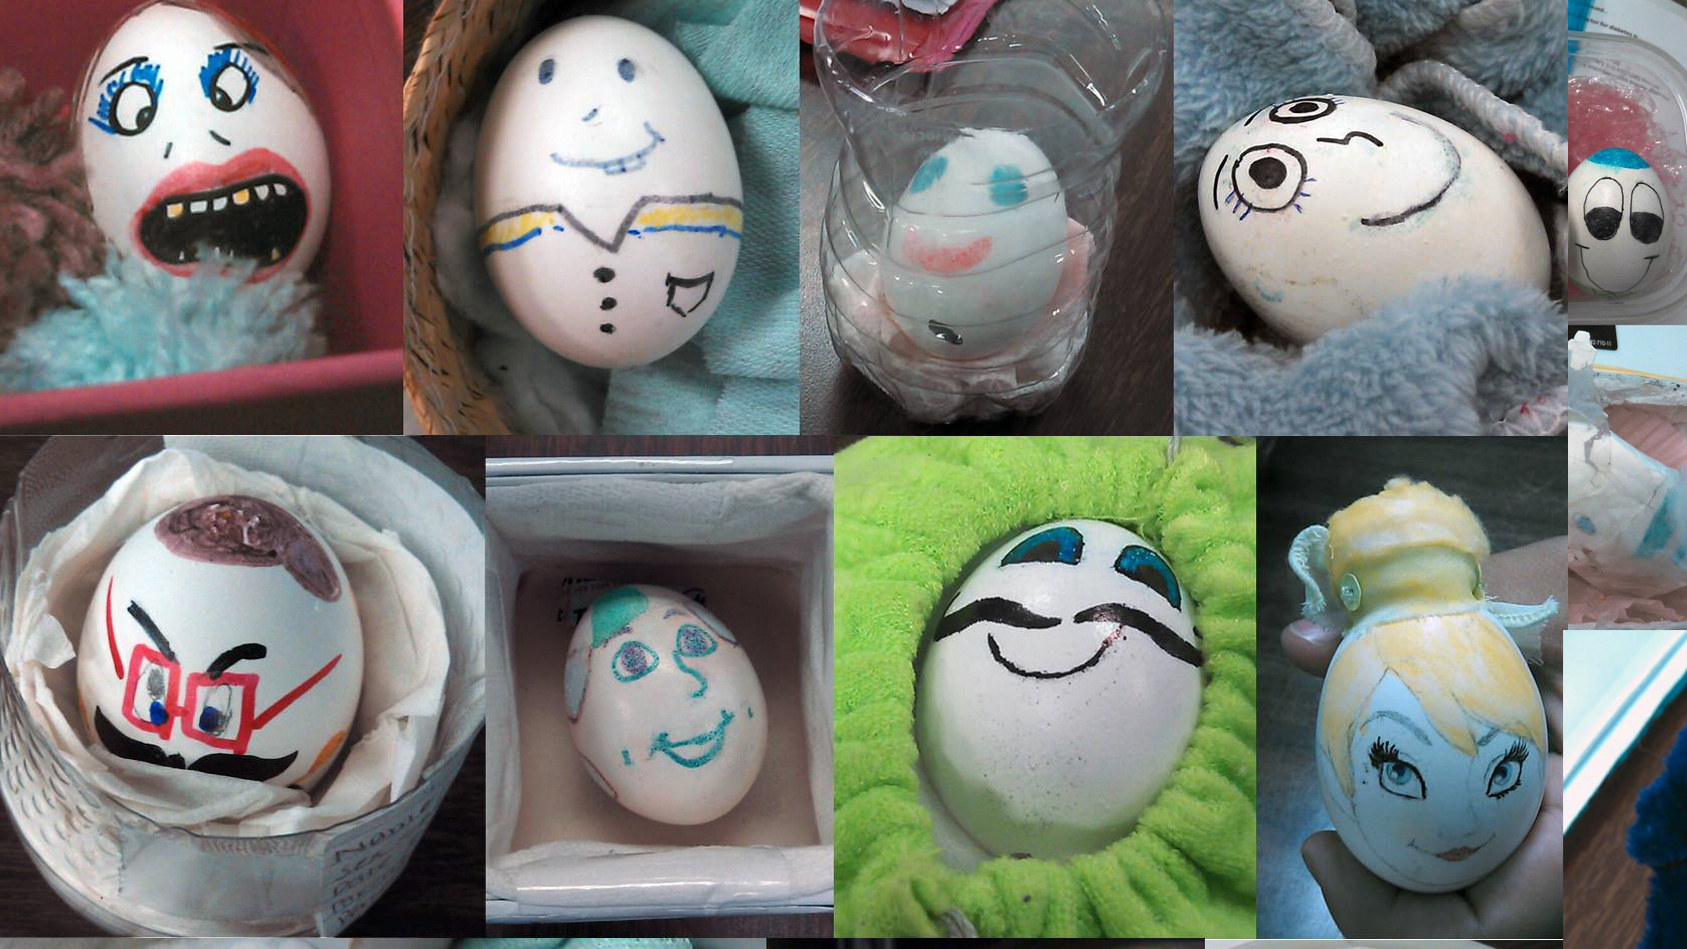 Egg Character Design Ideas : A classic prep for parenthood but is the egg all it s cracked up